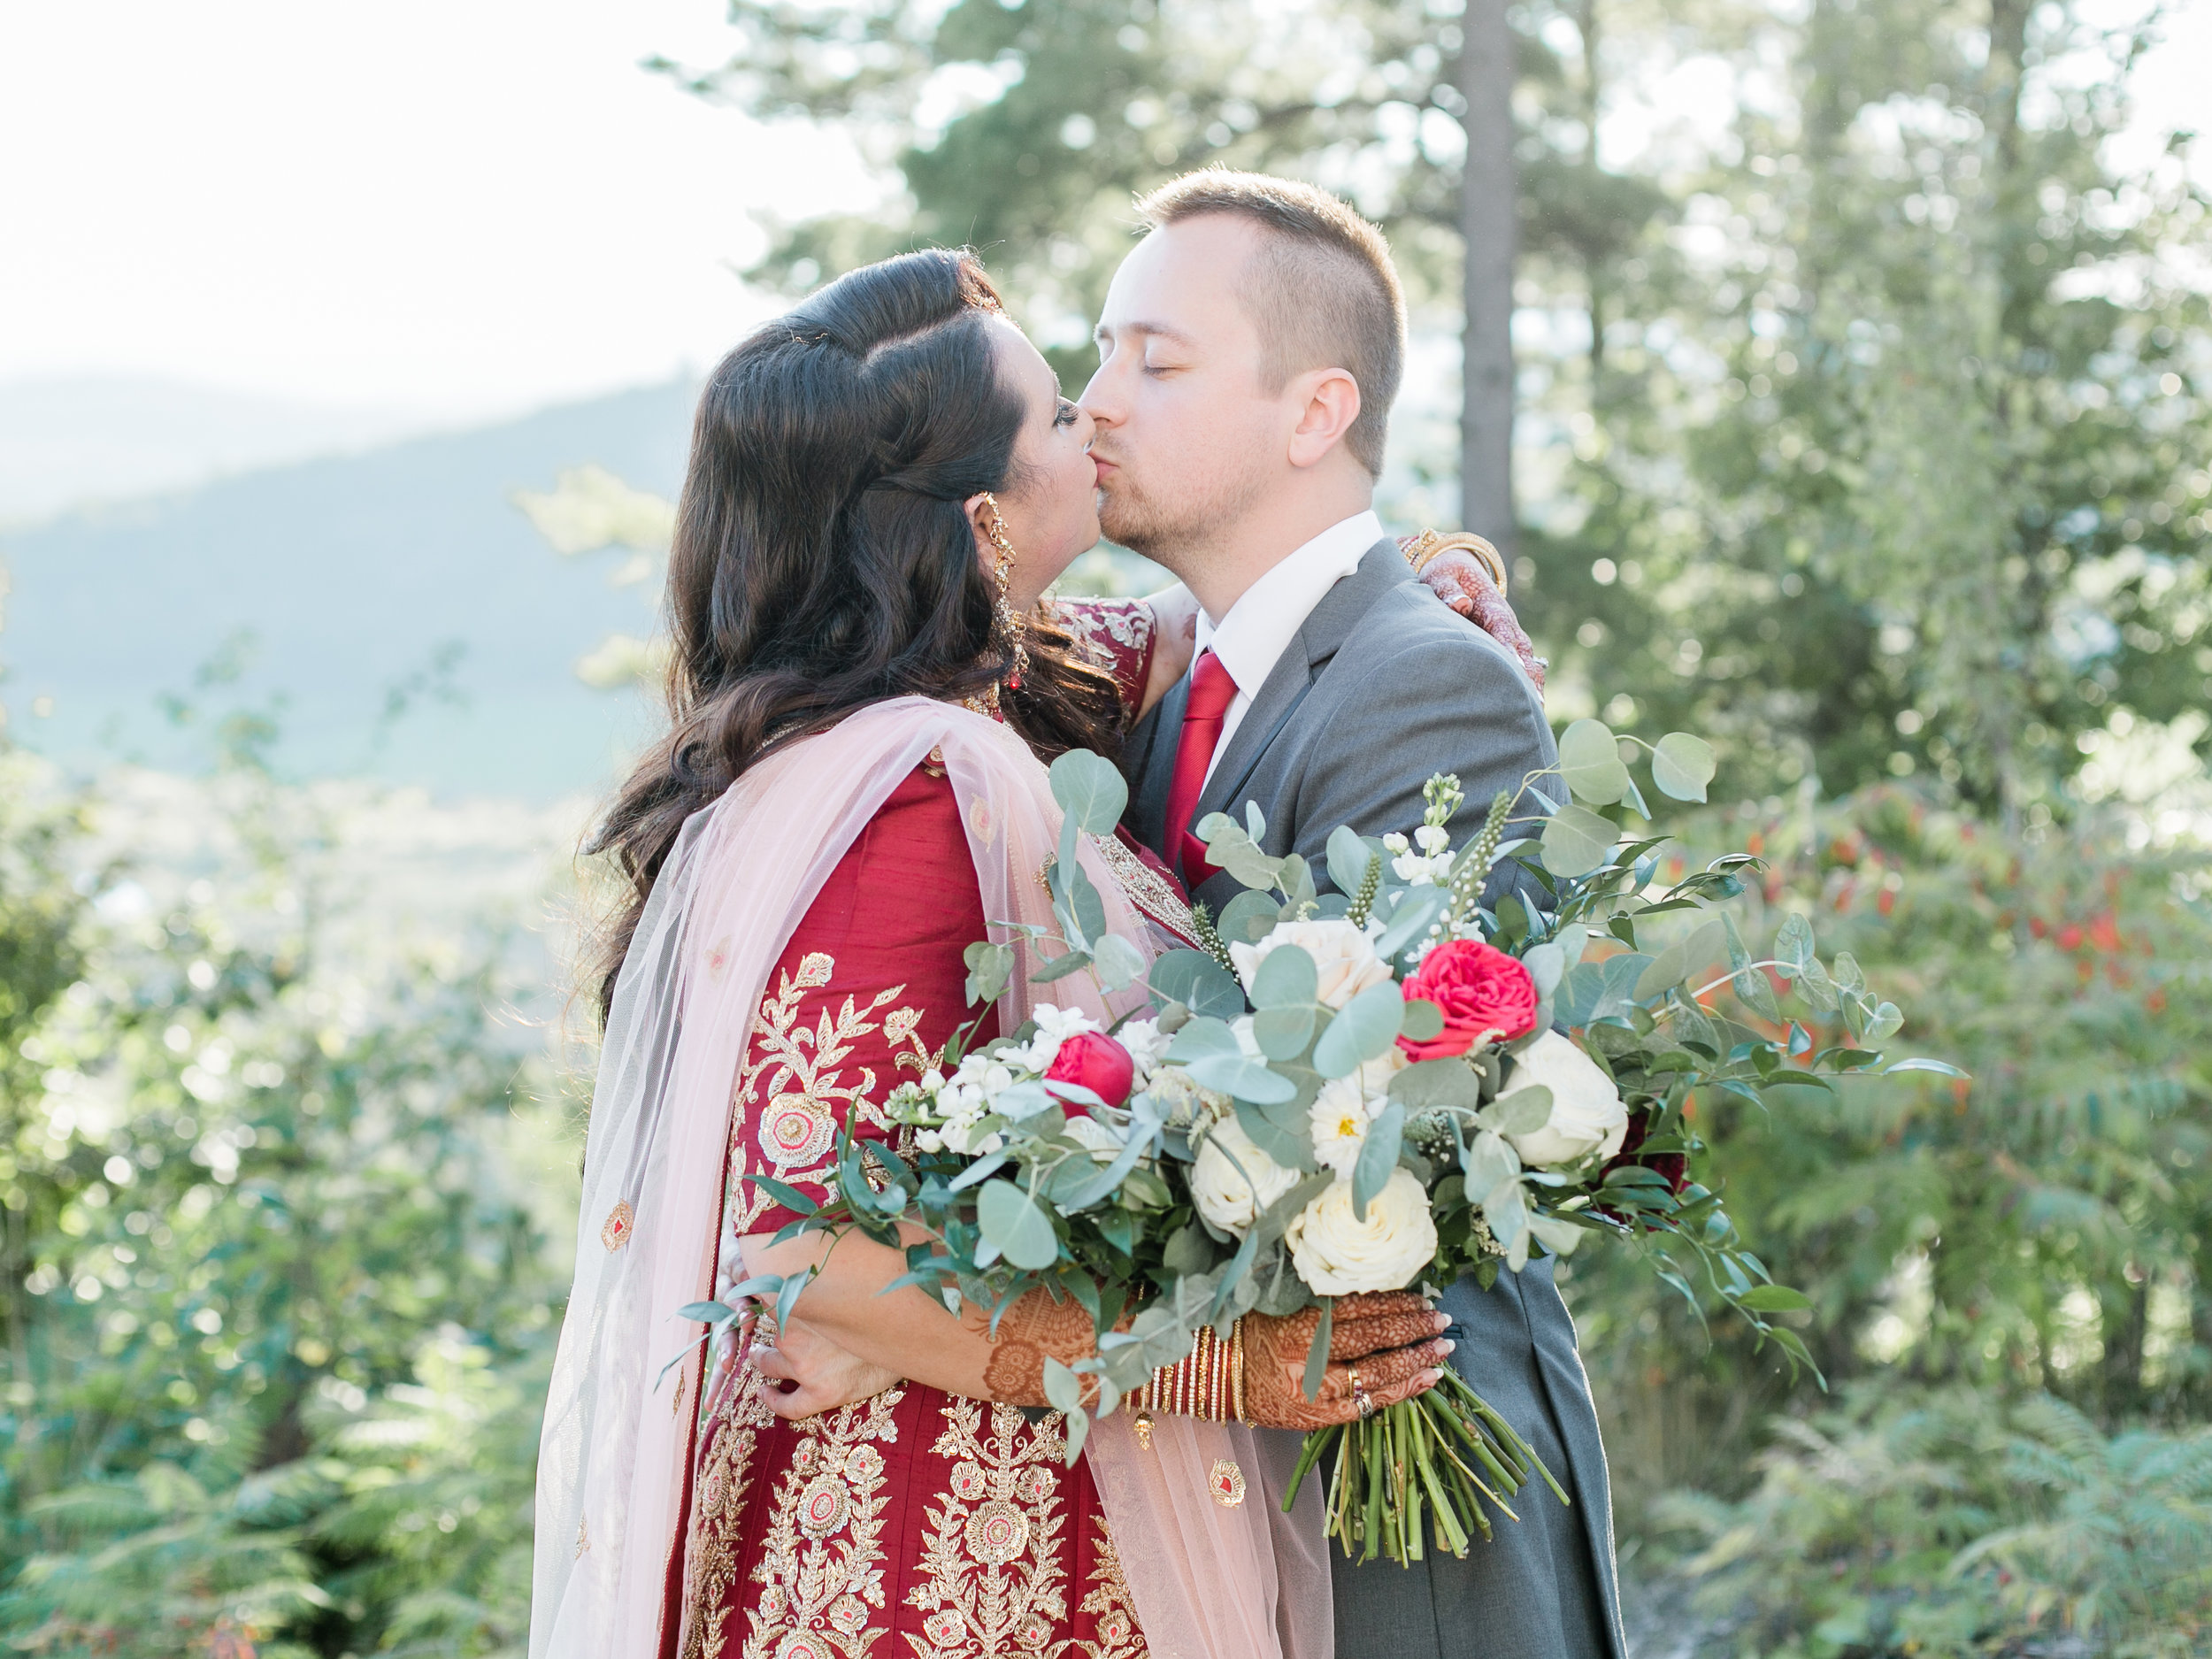 LeBelvedere_MountainTopWedding_StephanieMasonPhotography-252.jpg